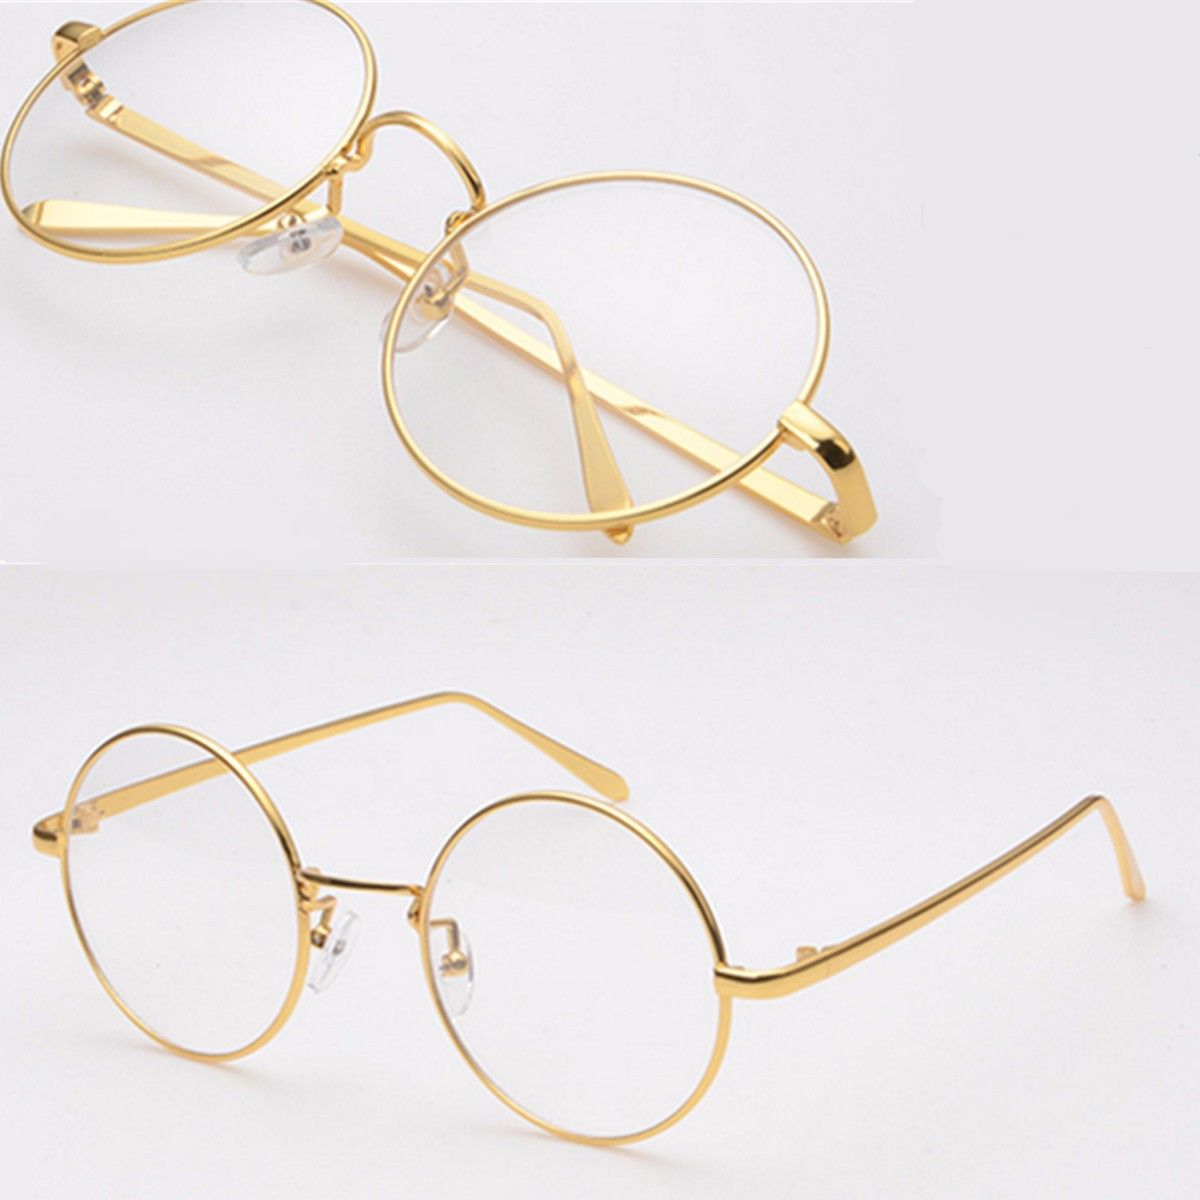 56f8dd606dae GOLD Metal Vintage Round Eyeglass Frame Clear Lens Full-Rim Glasses ...